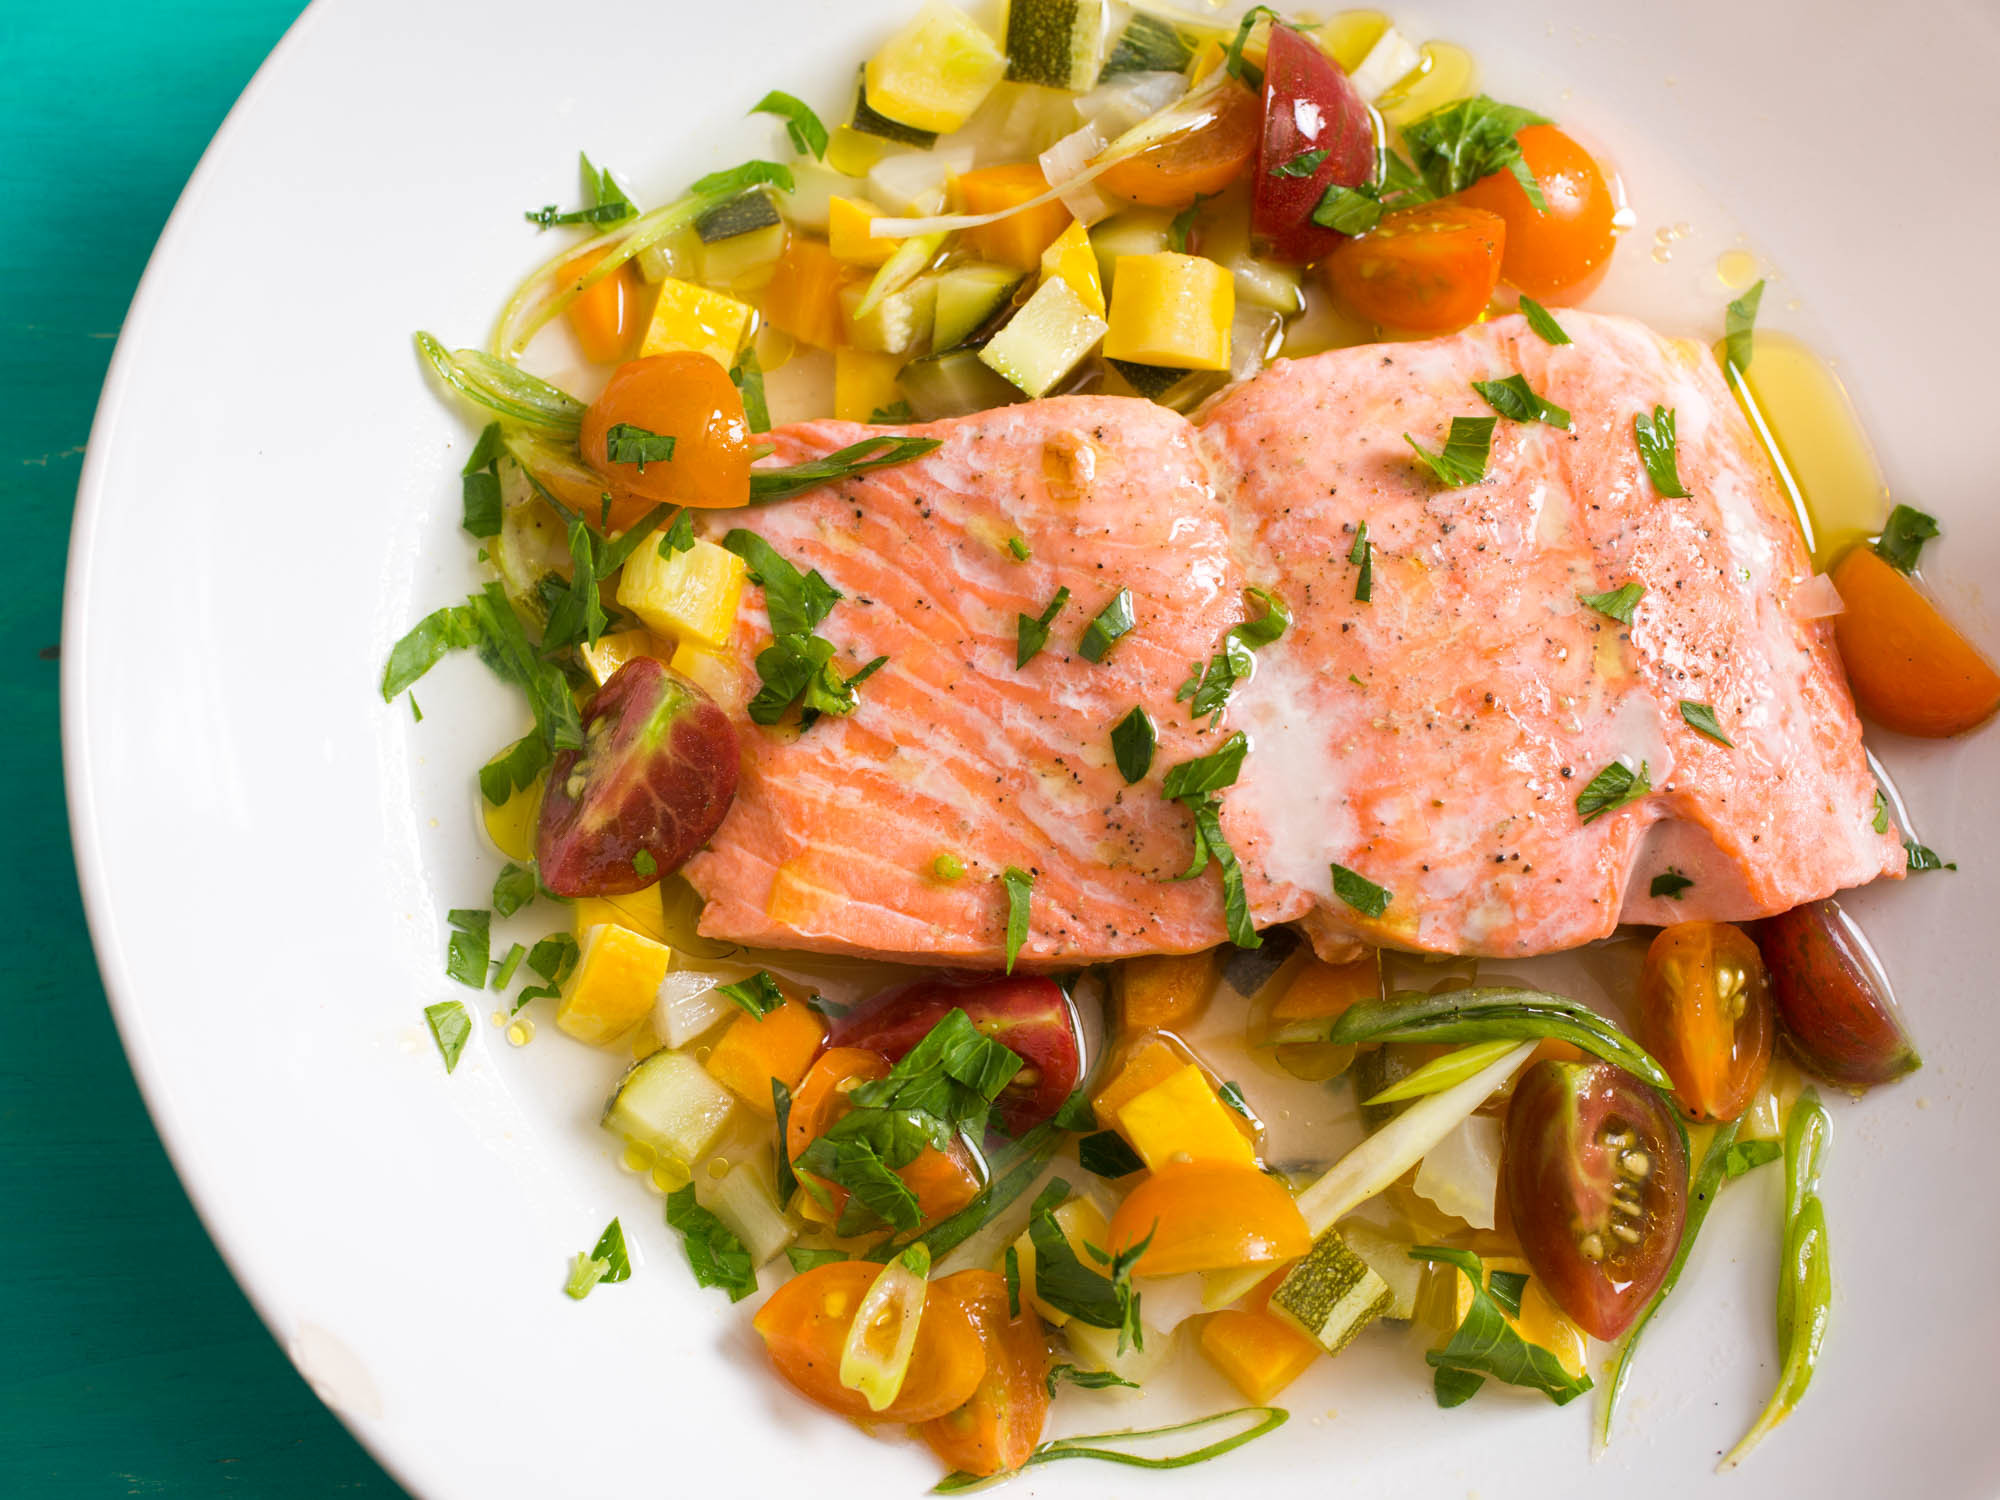 Side Dishes For Seafood  What to Eat With Salmon Tried and True Side Dishes for a